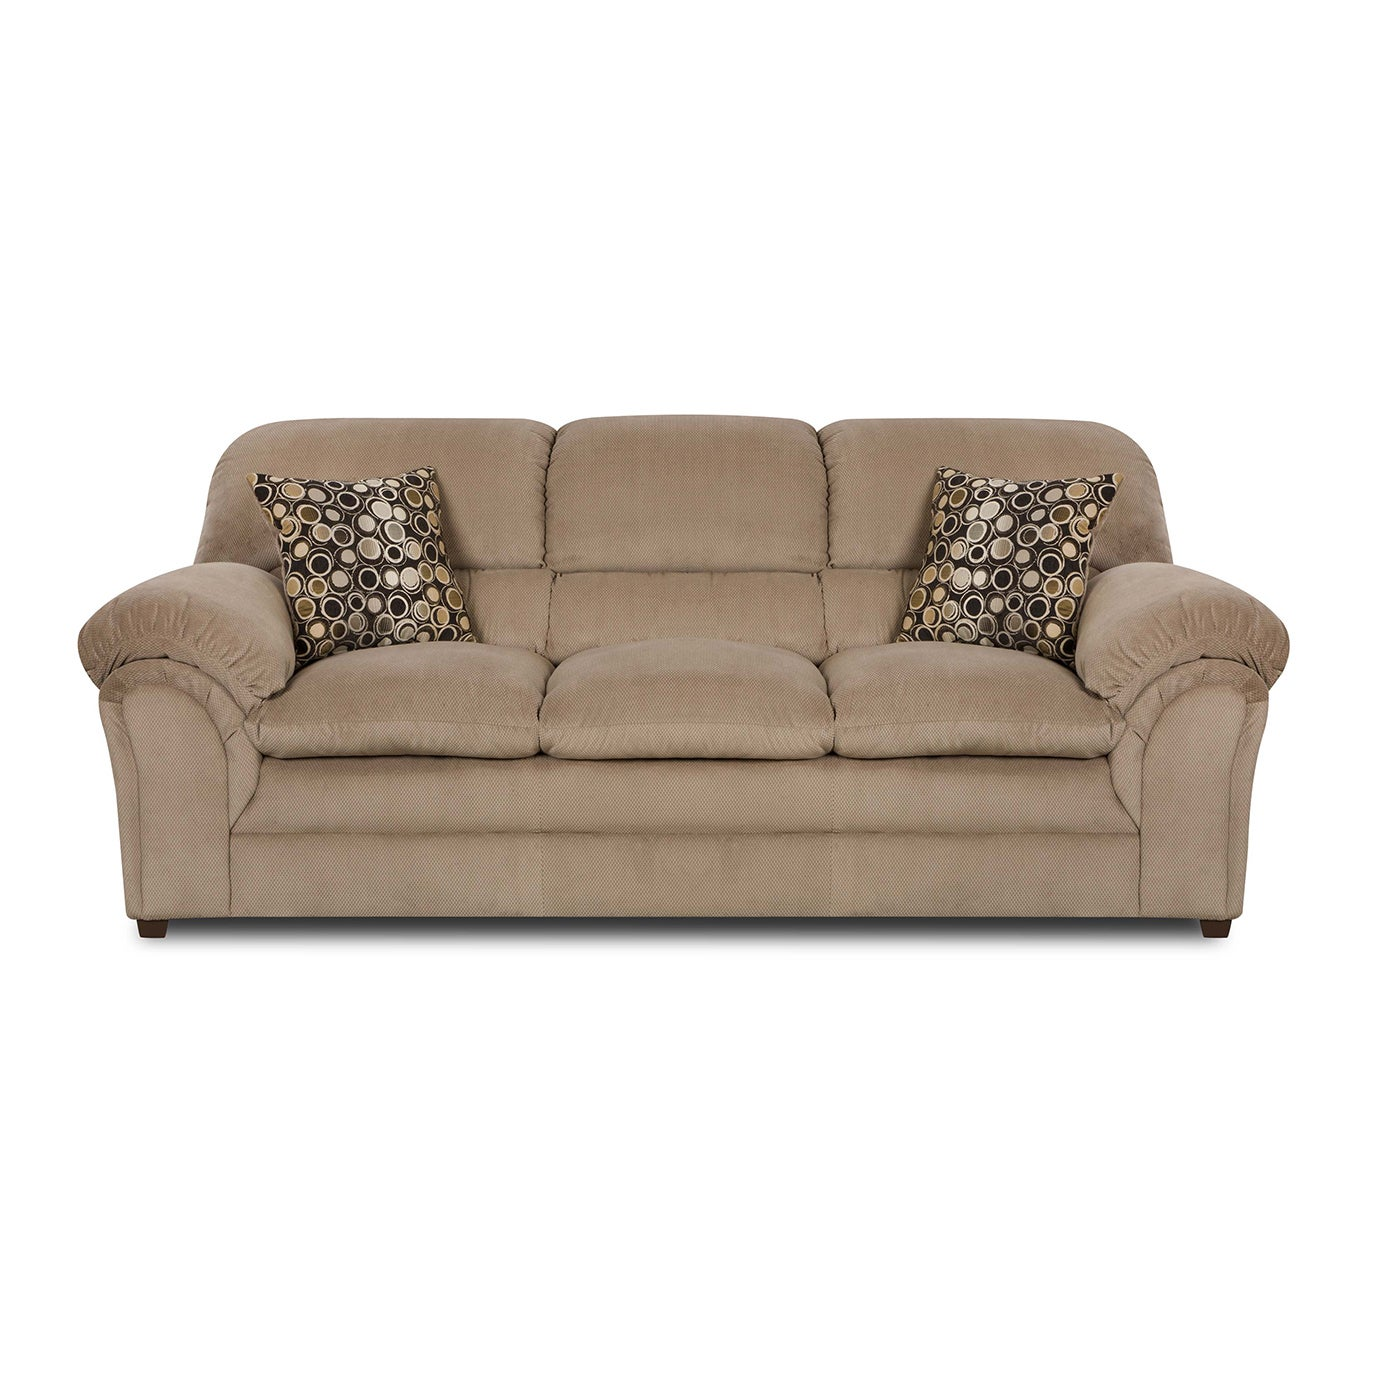 Simmons Upholstery Harper Cocoa Sofa (Sofa), Brown (Fabric)